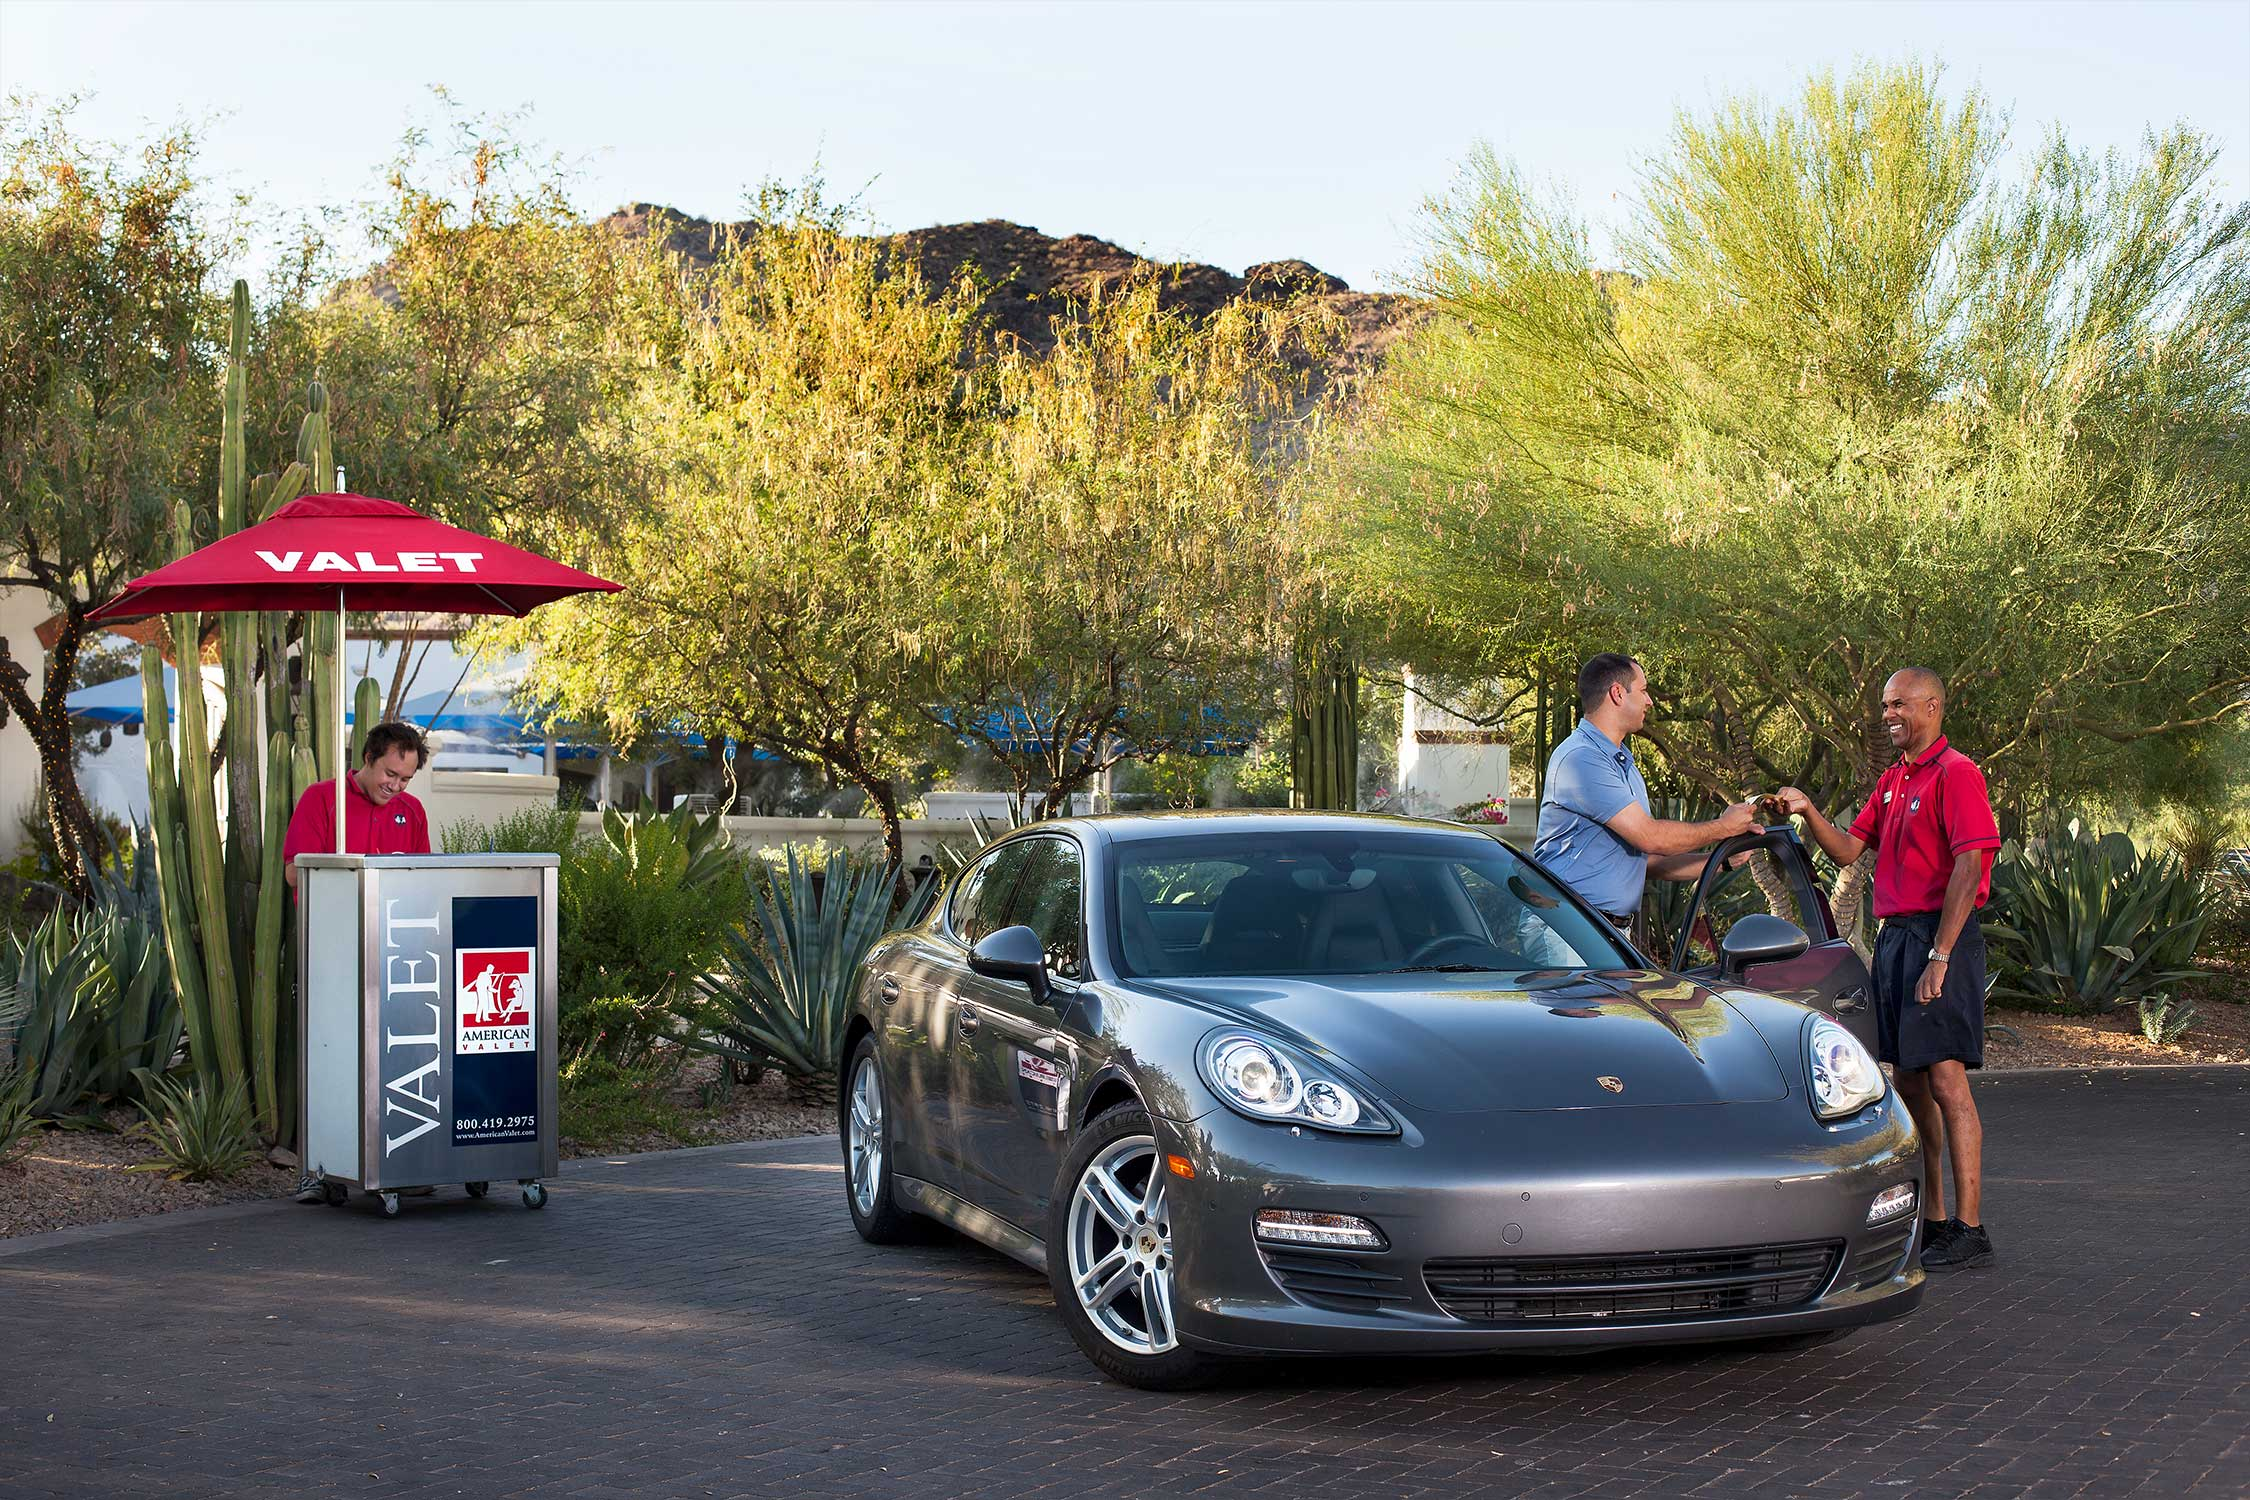 Retail Valet Parking Services by American Valet in Scottsdale